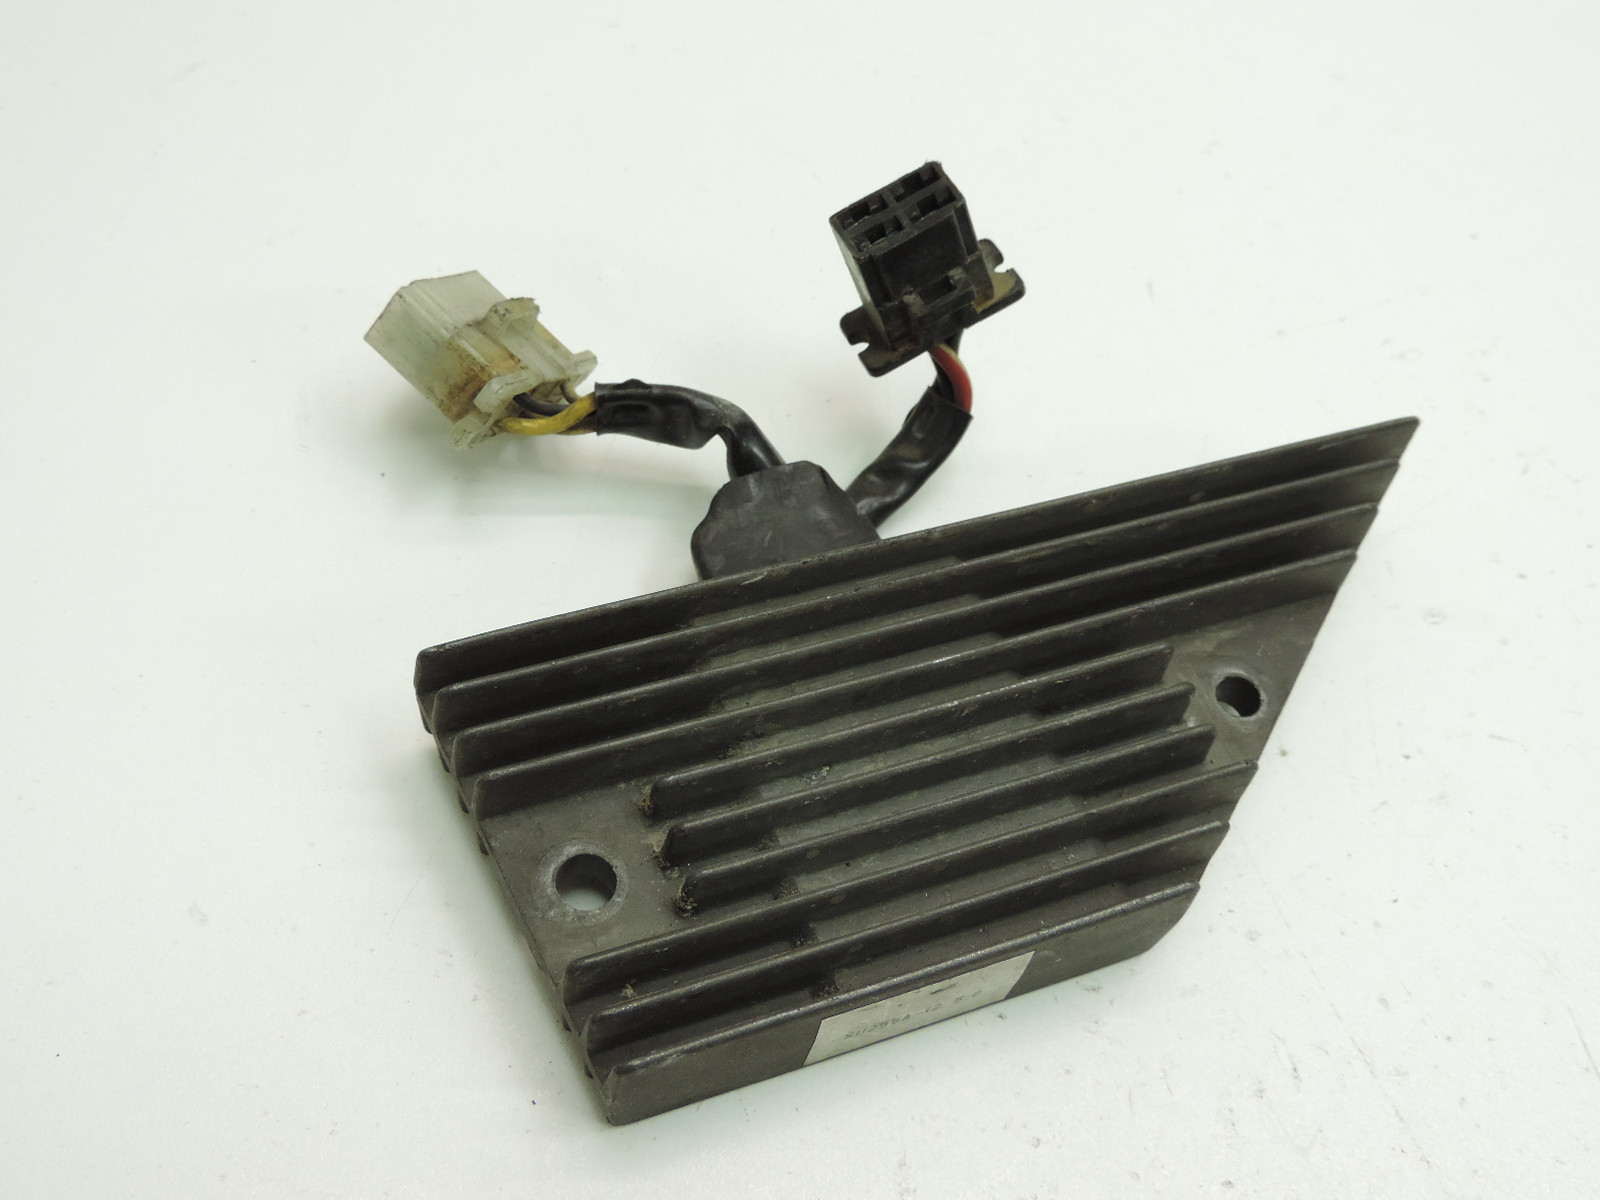 Regulator Rectifier Honda Cbx 750 F 1984 1987 201345760 Crf Wiring